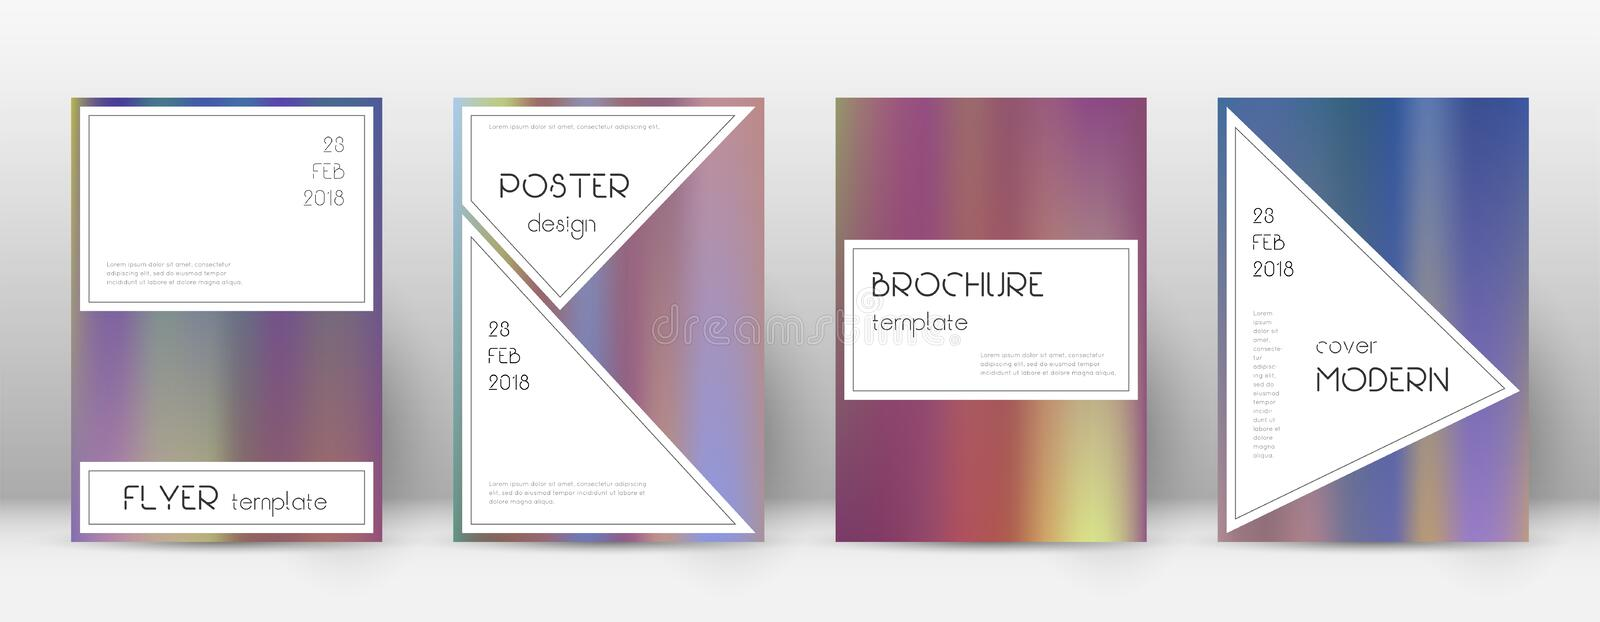 Flyer layout. Stylish majestic template for Brochu. Re, Annual Report, Magazine, Poster, Corporate Presentation, Portfolio, Flyer. Authentic bright hologram stock illustration